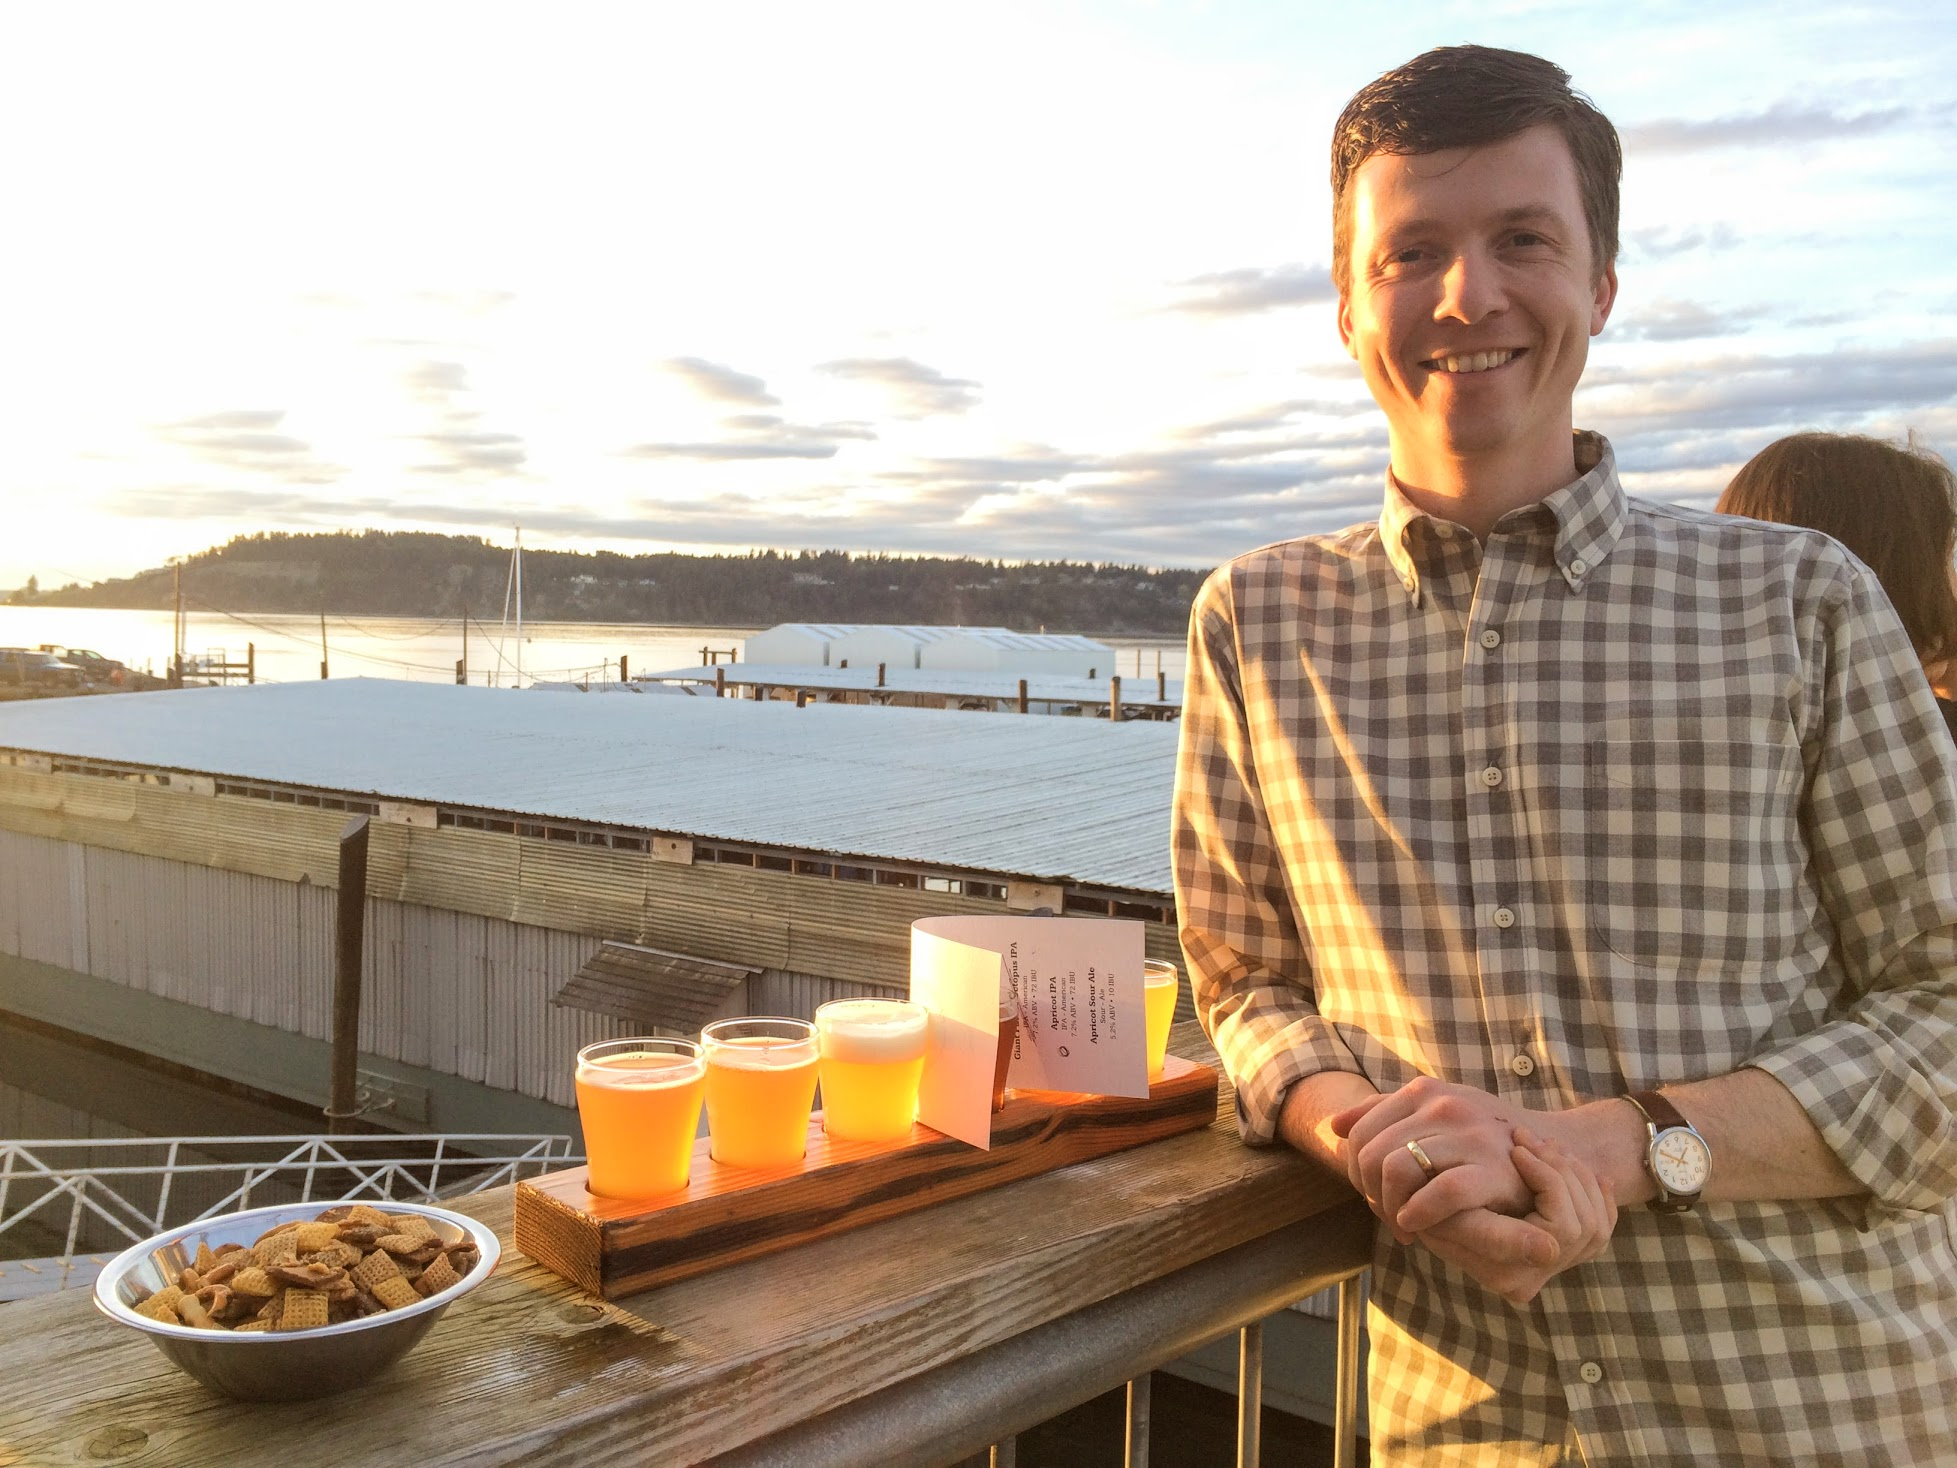 Enjoy a flight of local brews out on the deck when the weather's nice. Add some crunchy snacks or even bring your own food!